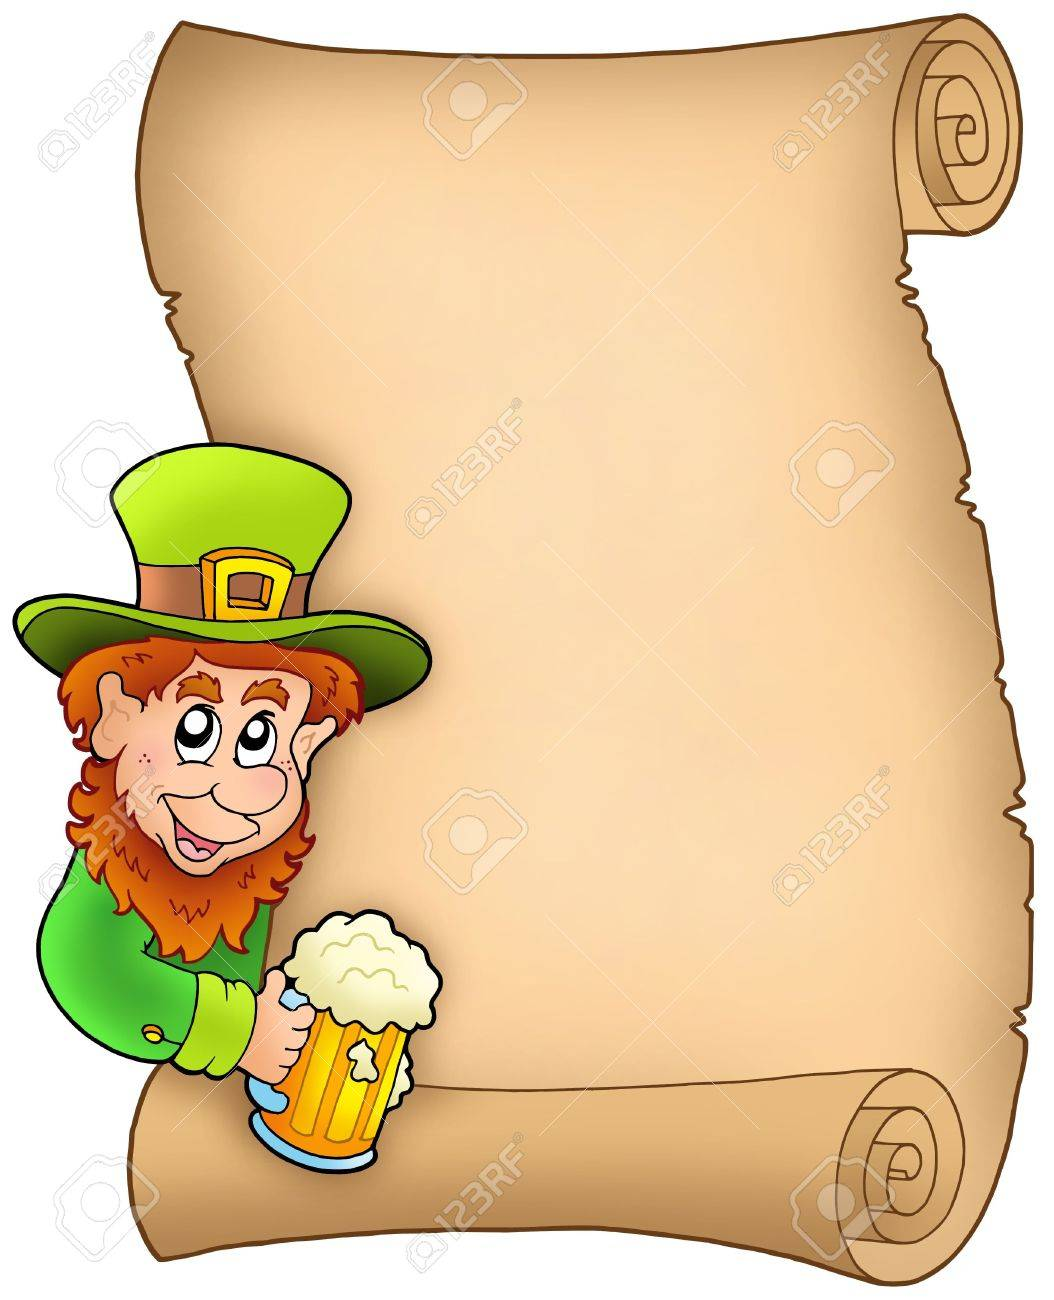 Parchment with leprechaun and beer - color illustration. Stock Illustration - 6520479